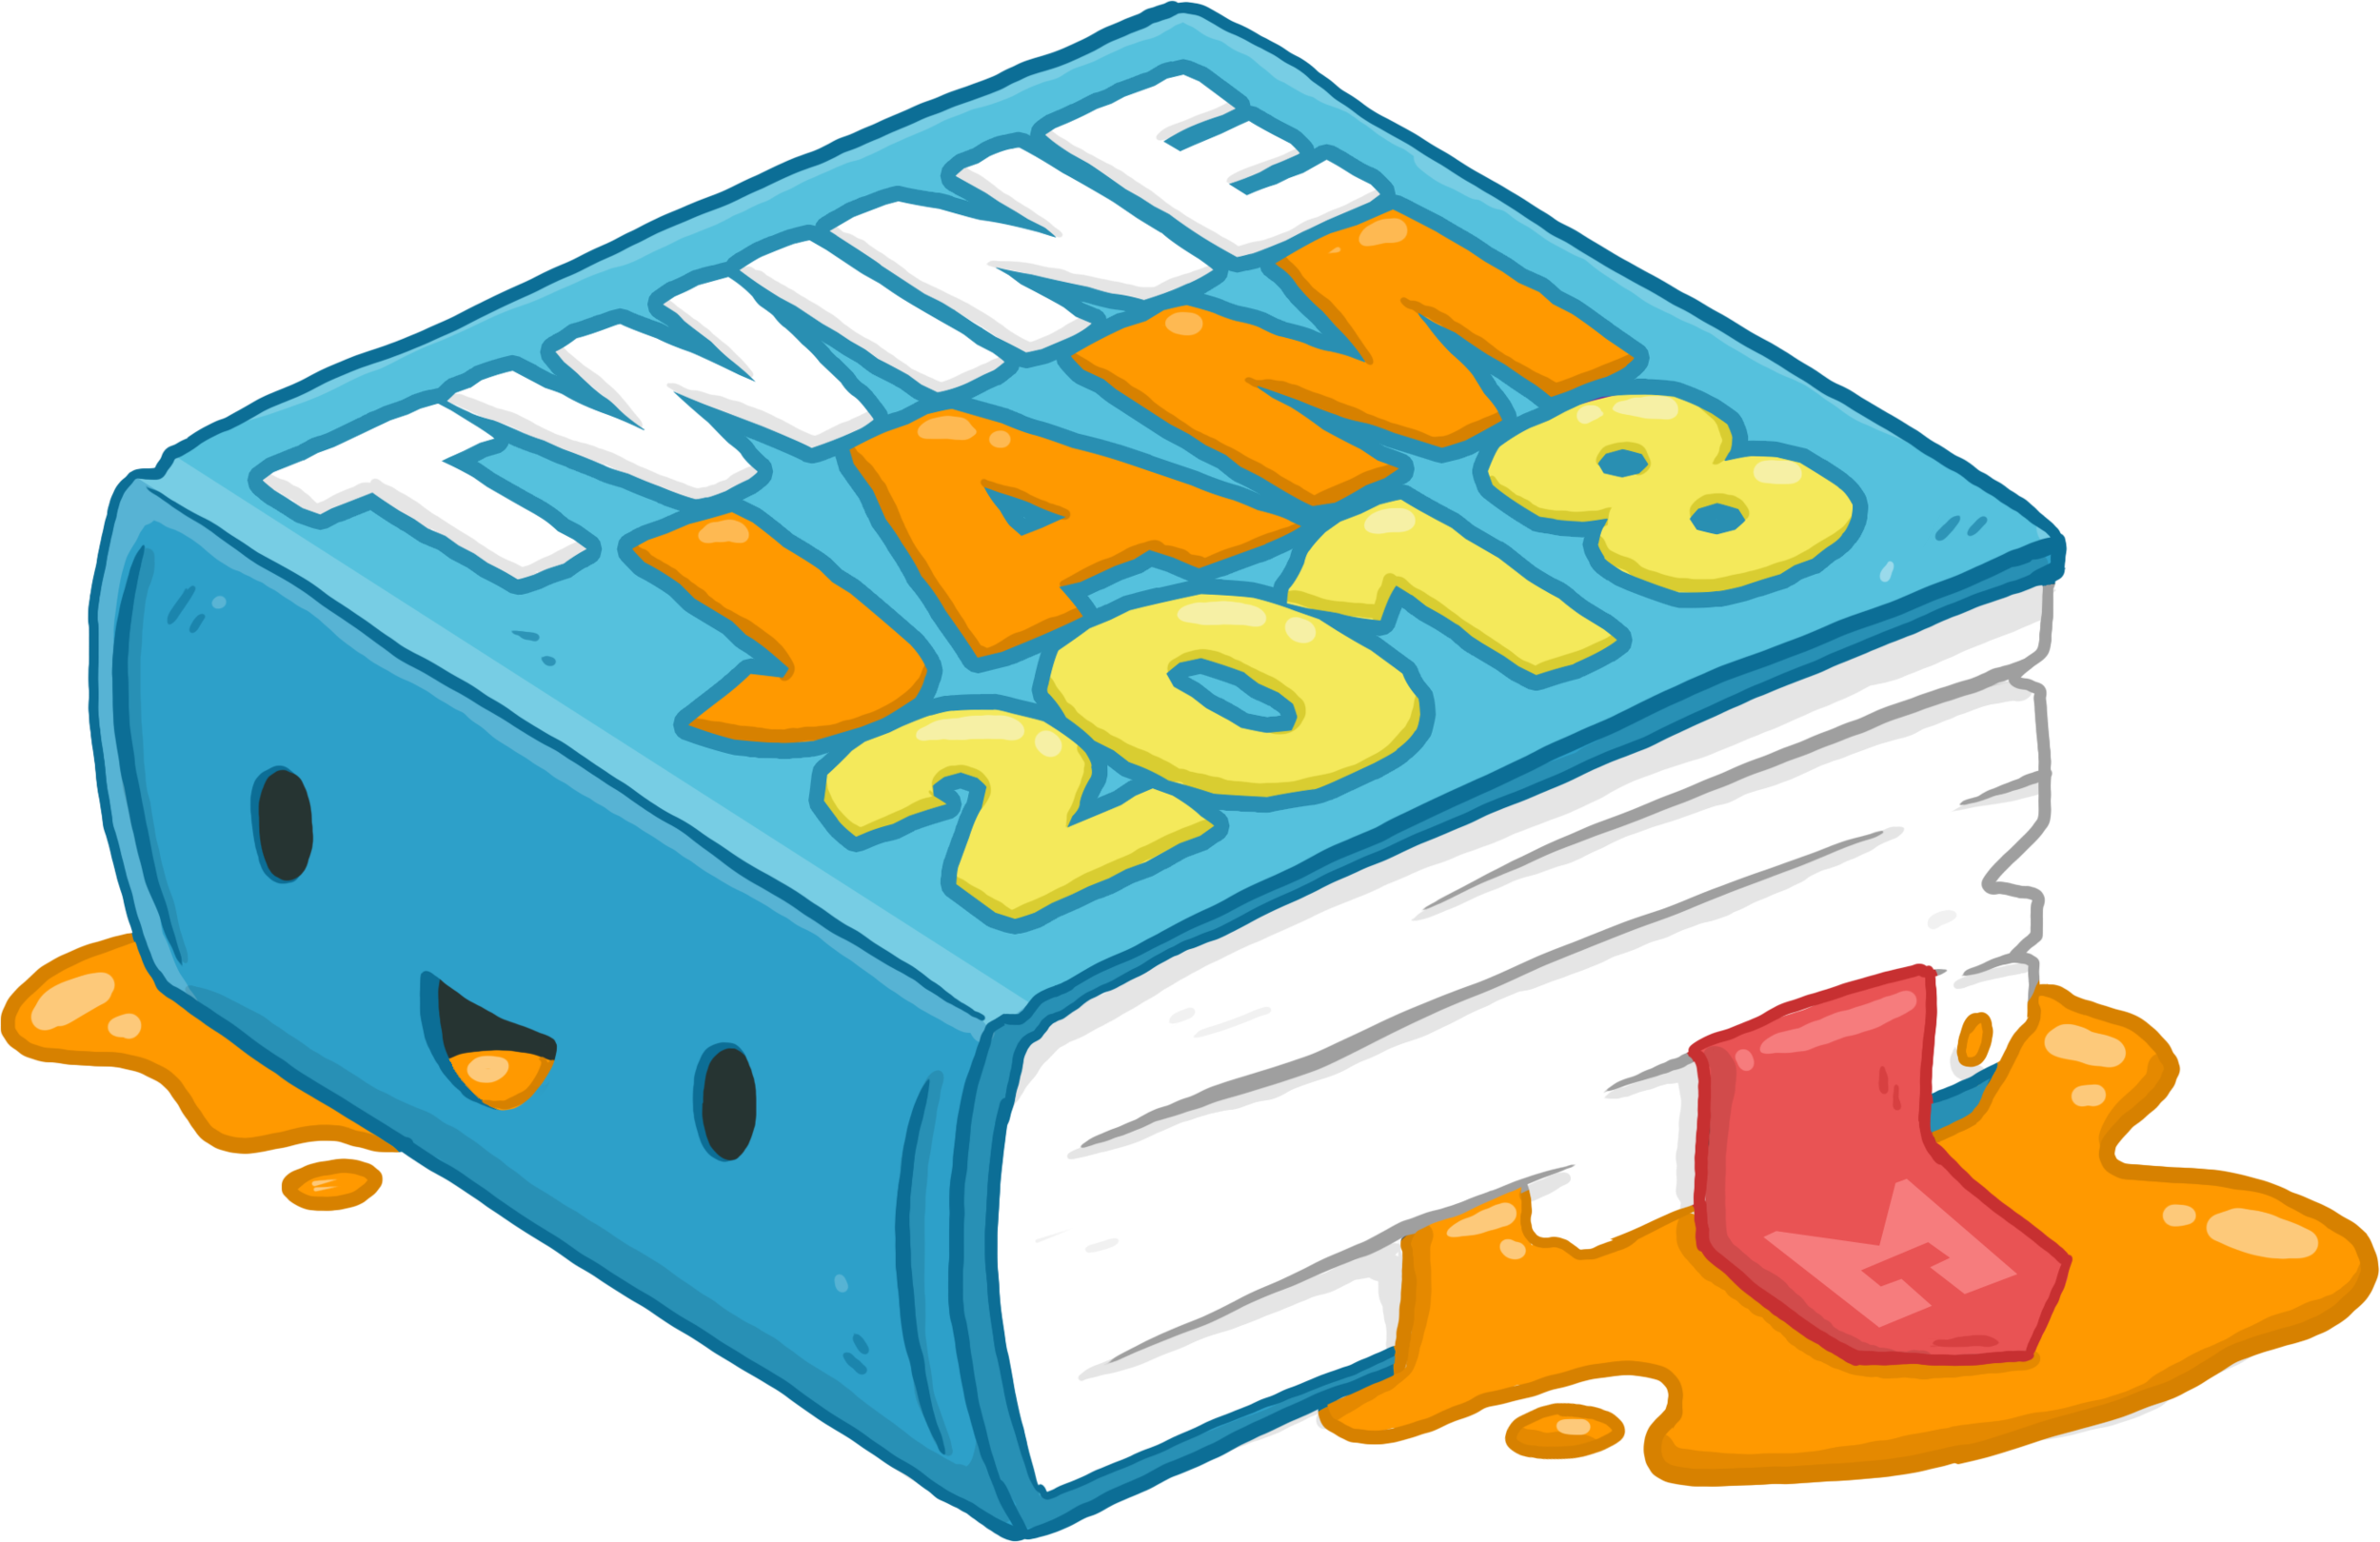 Following the success of 2017's  Mediatonic Twine Jam , I ran and co-hosted another edition for 2018! This year focused on a more writerly CYOA pursuit, which we are still in the process of converting to an analogue book. More on that to follow.